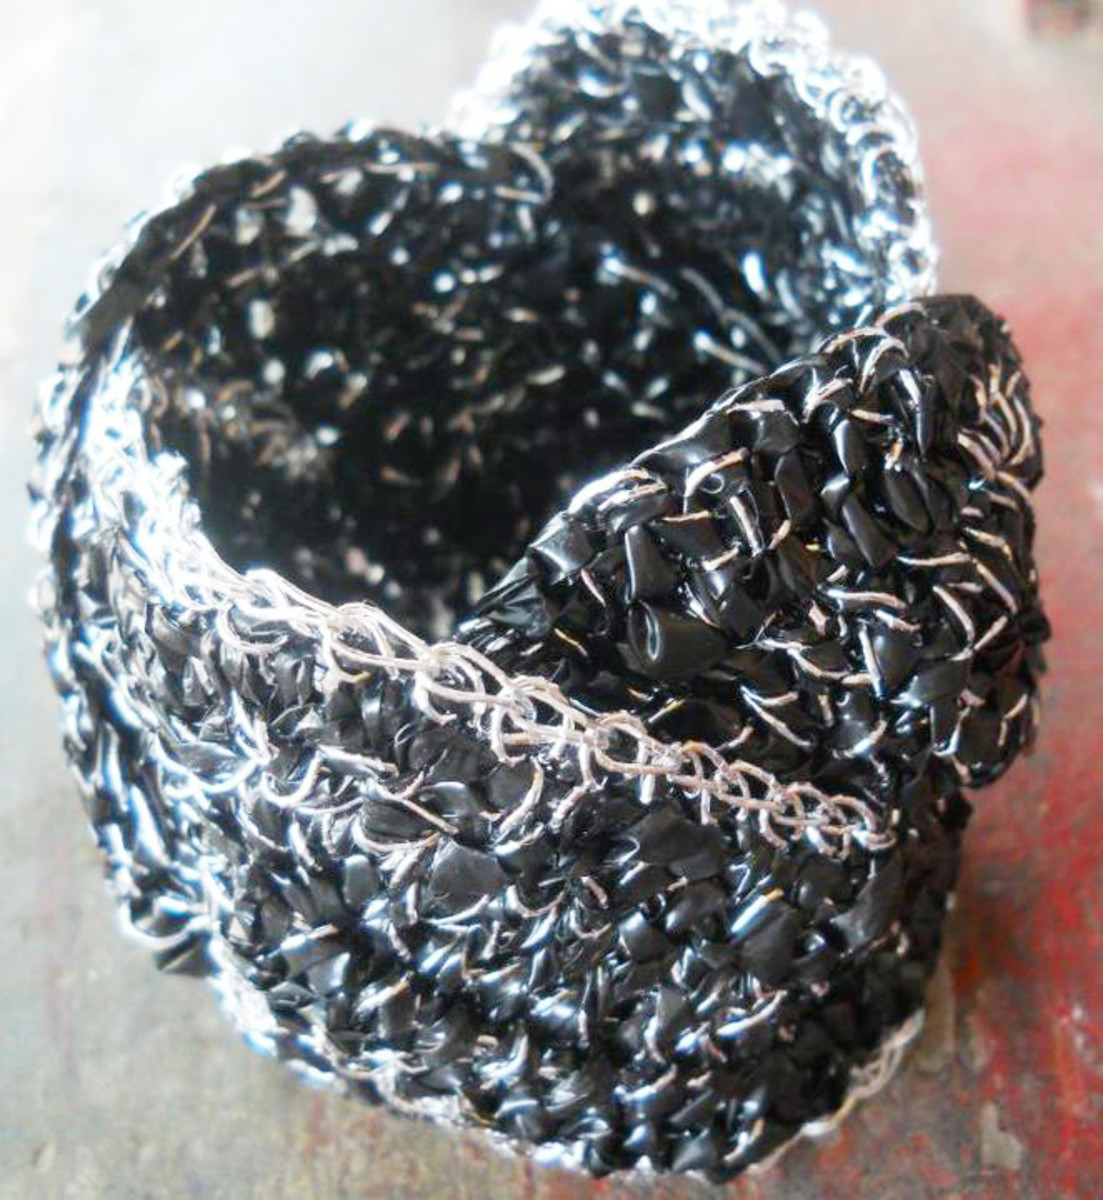 Charcoal WEAVED WAVE Bracelet - When I made this, I can't help looking for smudges in my hands and clothes. It really felt like crocheting charcoal or something like that. I think this would look great if I party with it in a club.